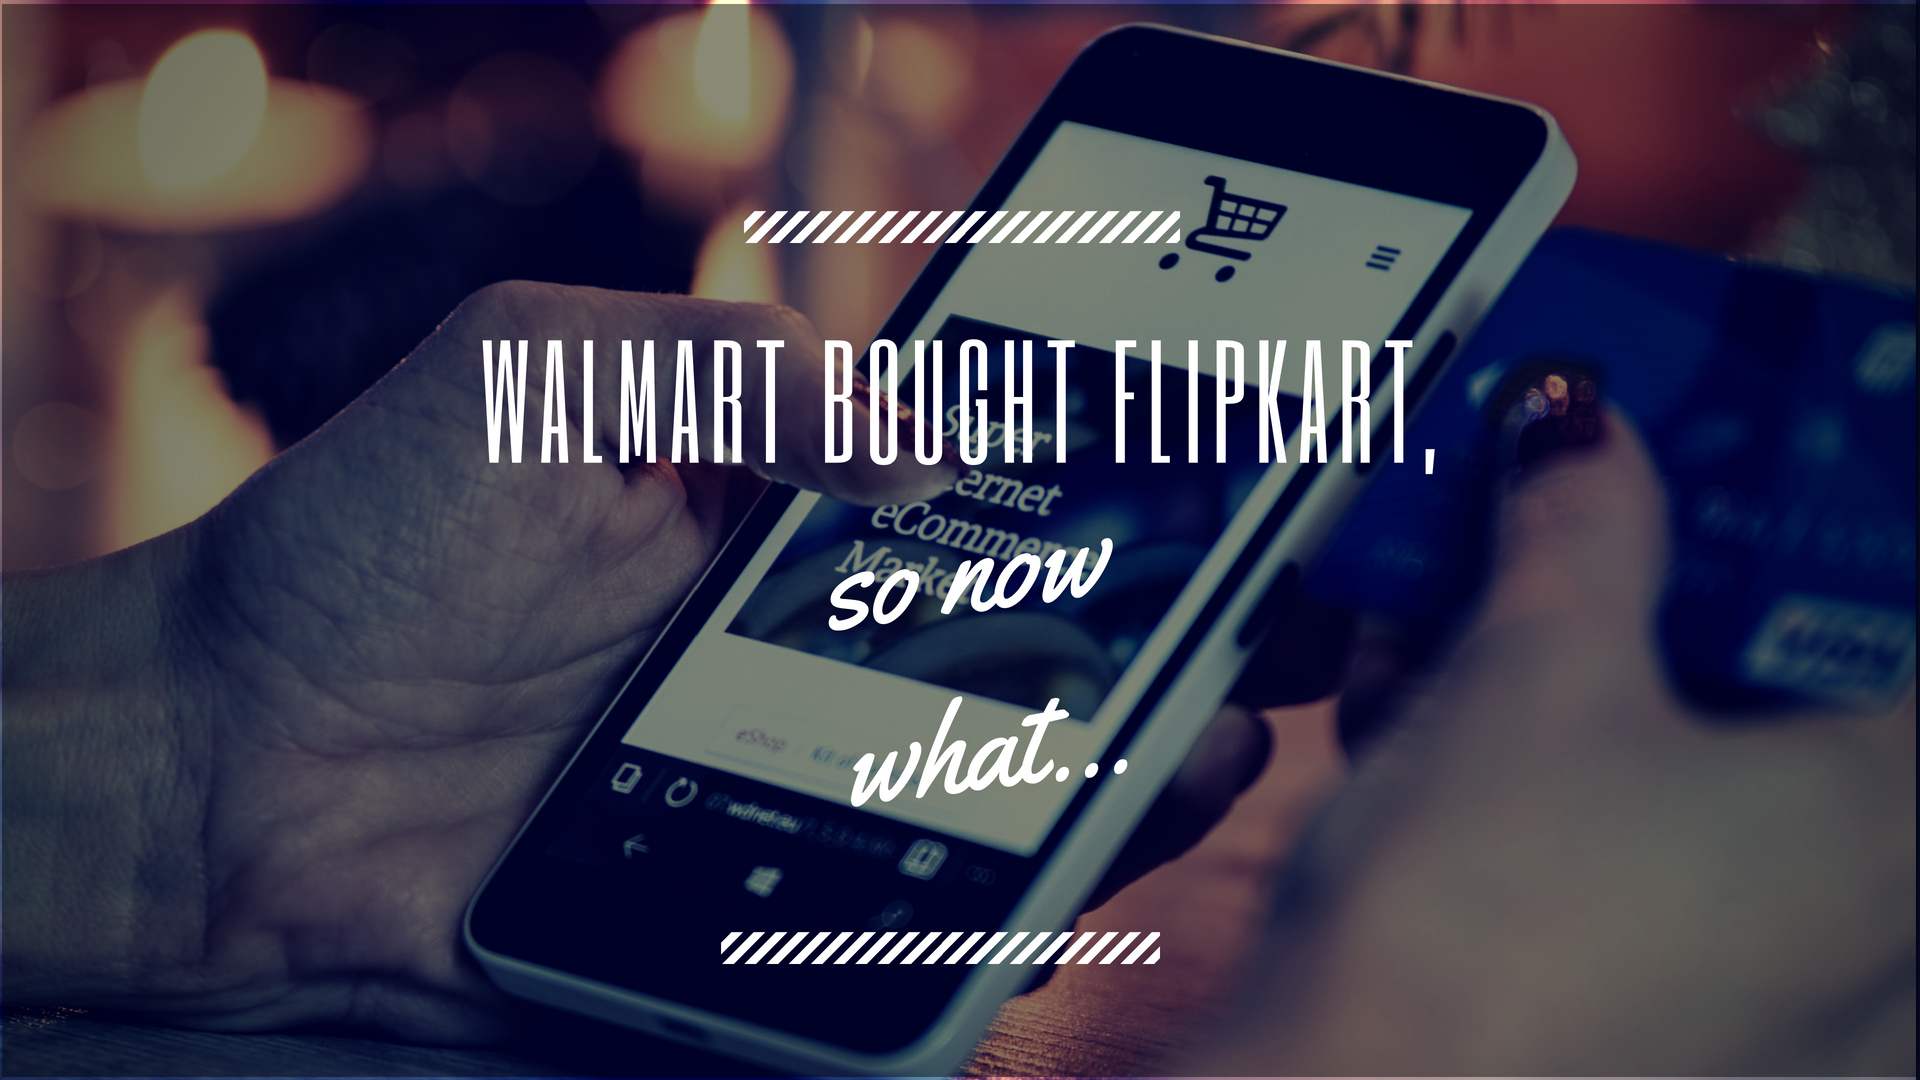 Walmart has bought Flipkart, now what